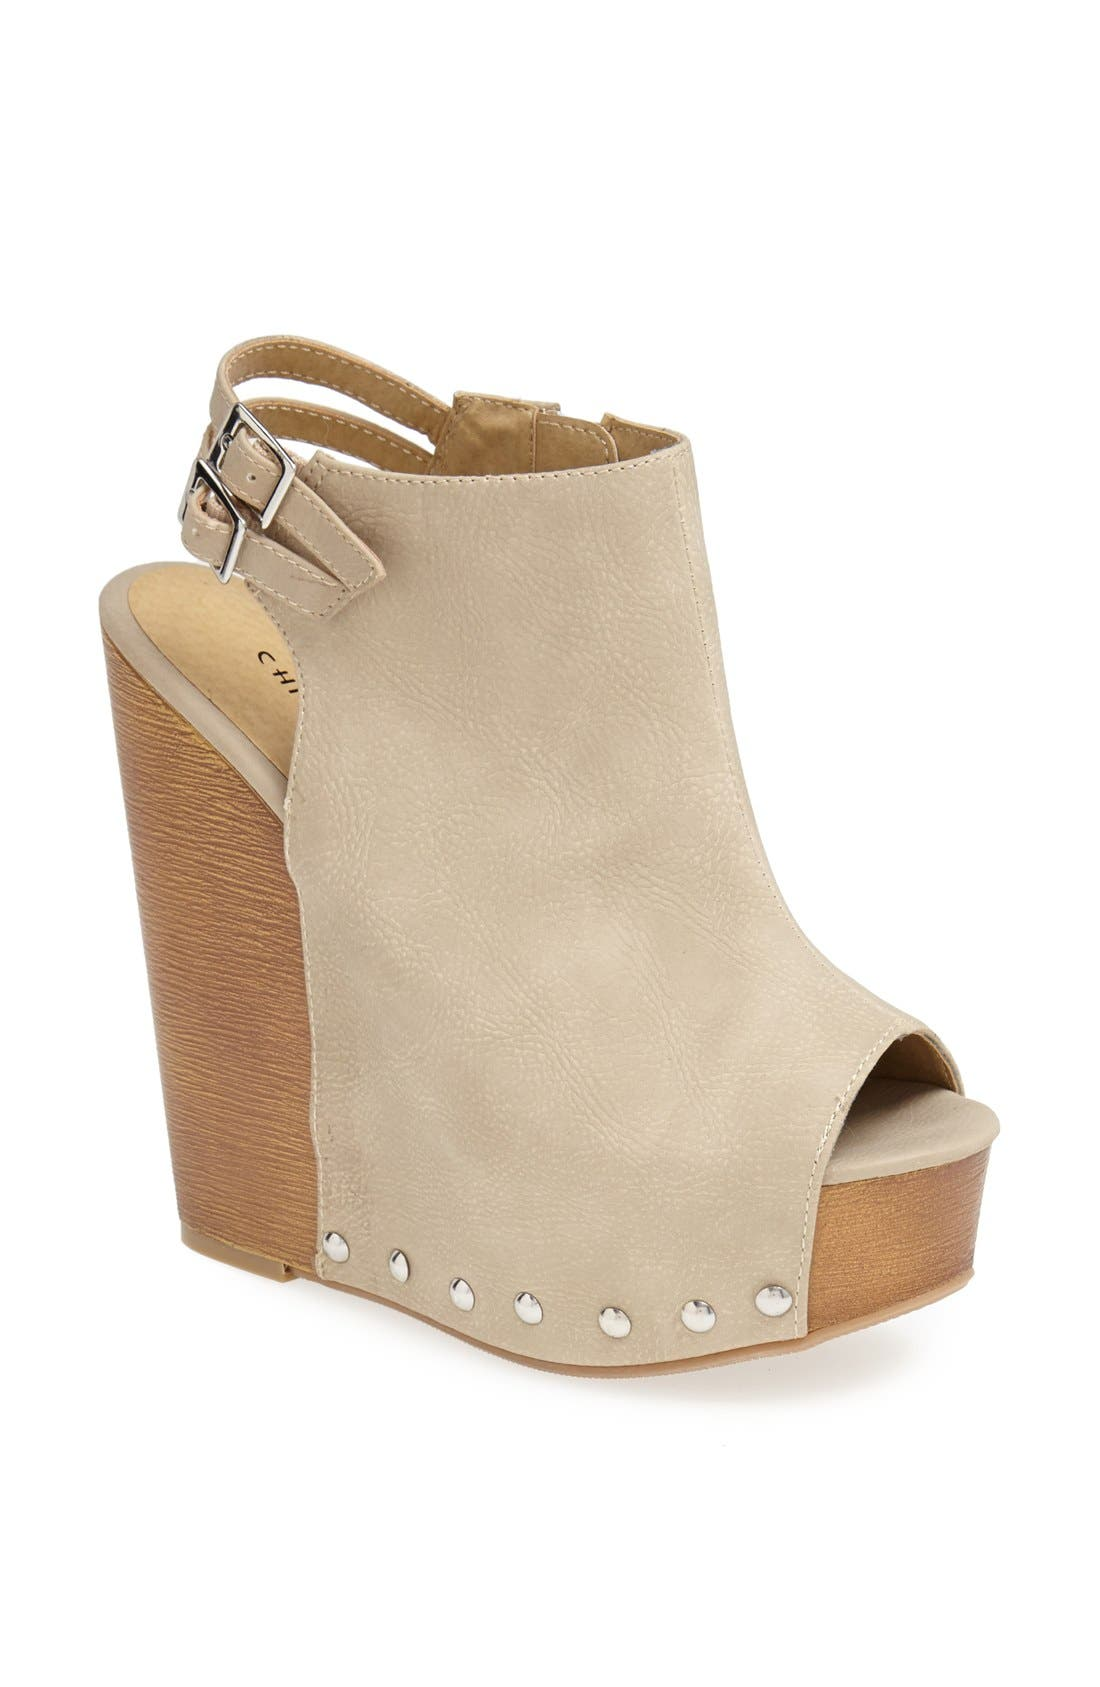 Alternate Image 1 Selected - Chinese Laundry 'Jeepers' Wedge Sandal